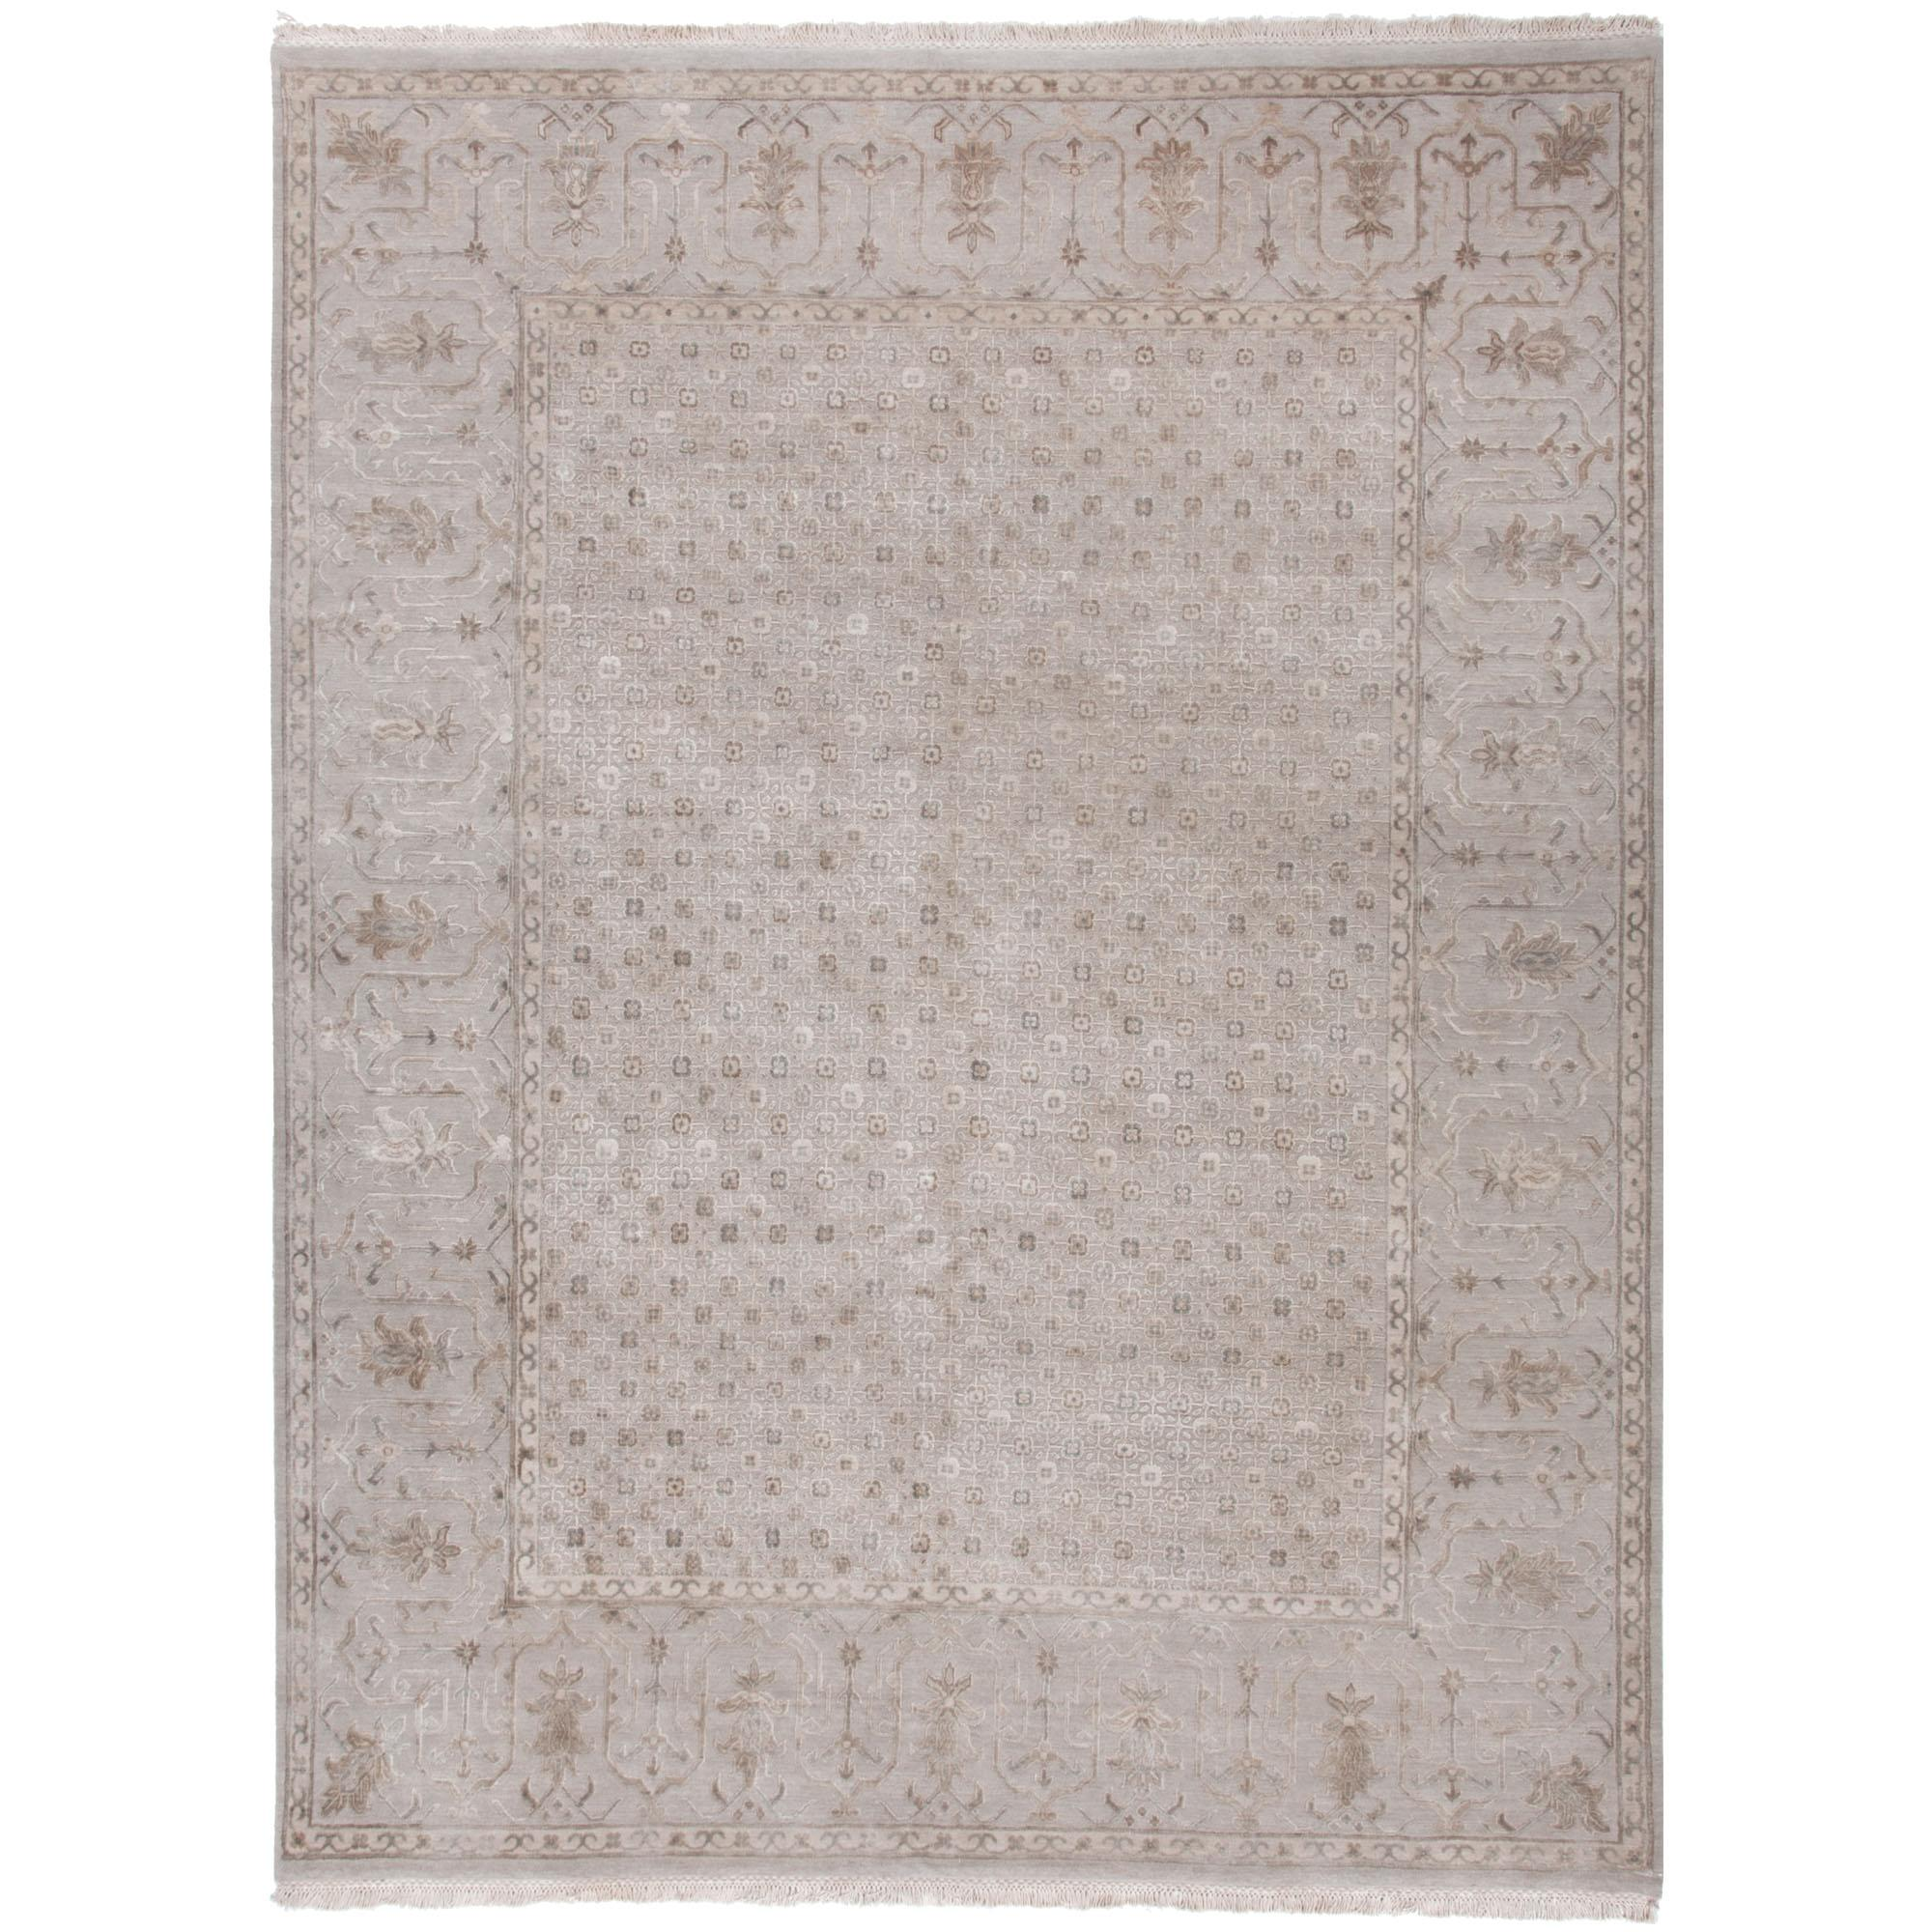 JAIPUR Rugs Connextion By Jenny Jones-signature 9 x 12 Rug - Item Number: RUG101355